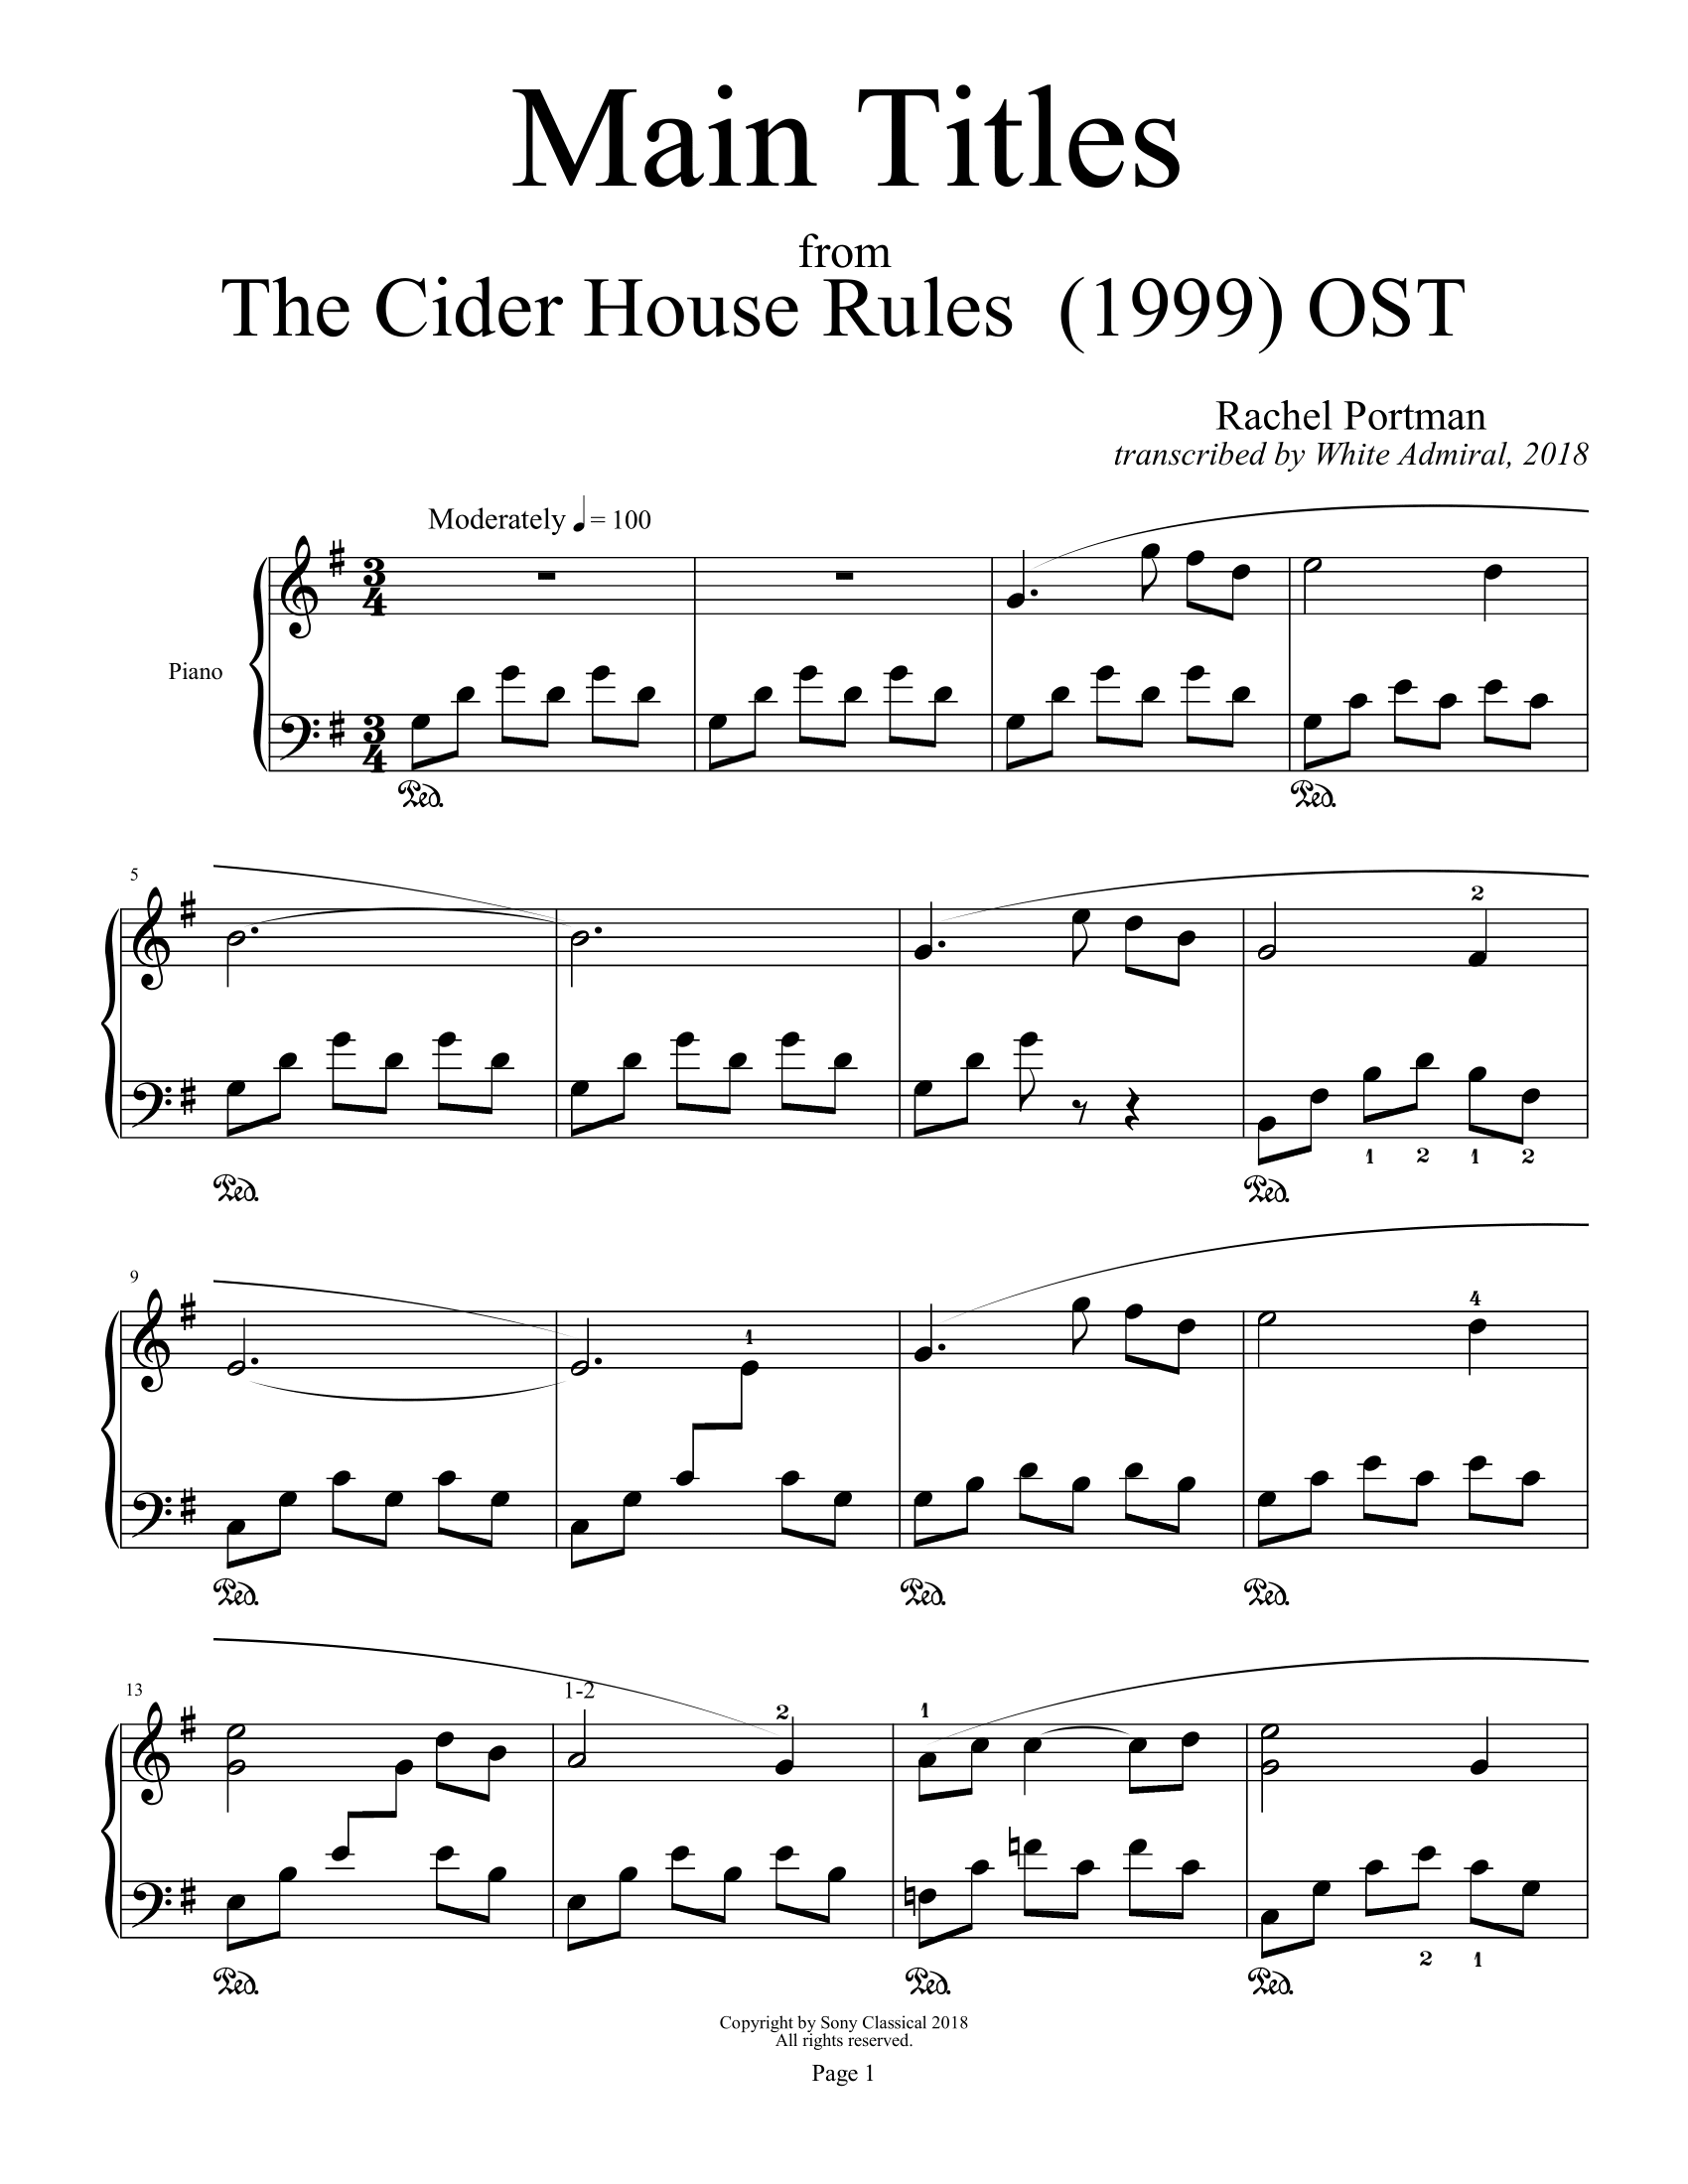 The Cider House Rules Main Titles Rachel Portman True Piano Transcriptions